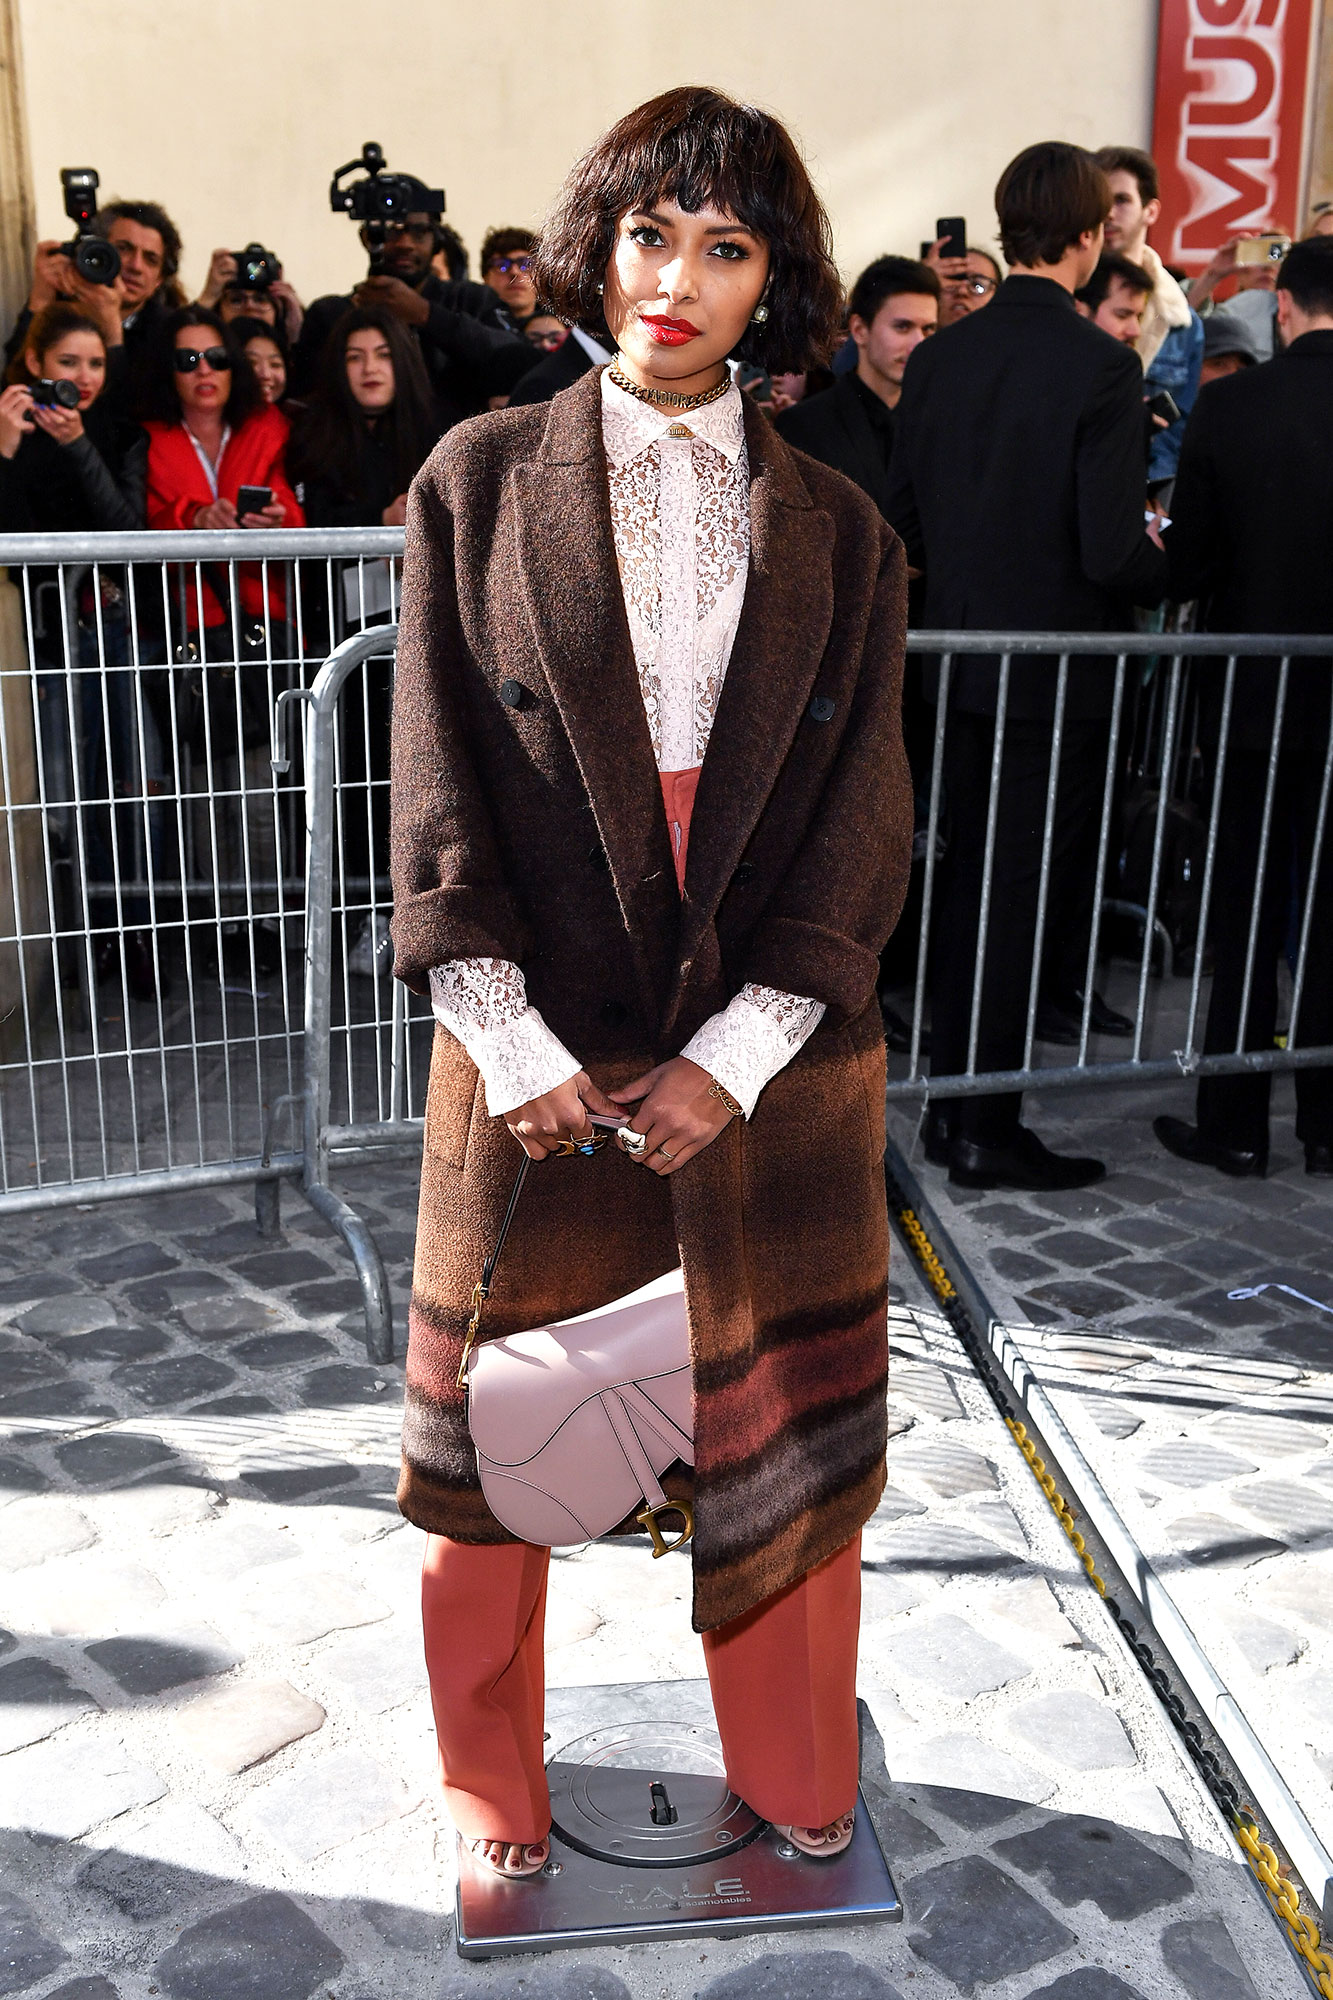 Kat Graham See the Stars' Street Style at Paris Fashion Week - The multi-hyphenate was a lacy lady in a sheer top, high-waisted trousers and cozy overcoat at Dior on Tuesday, February 26.